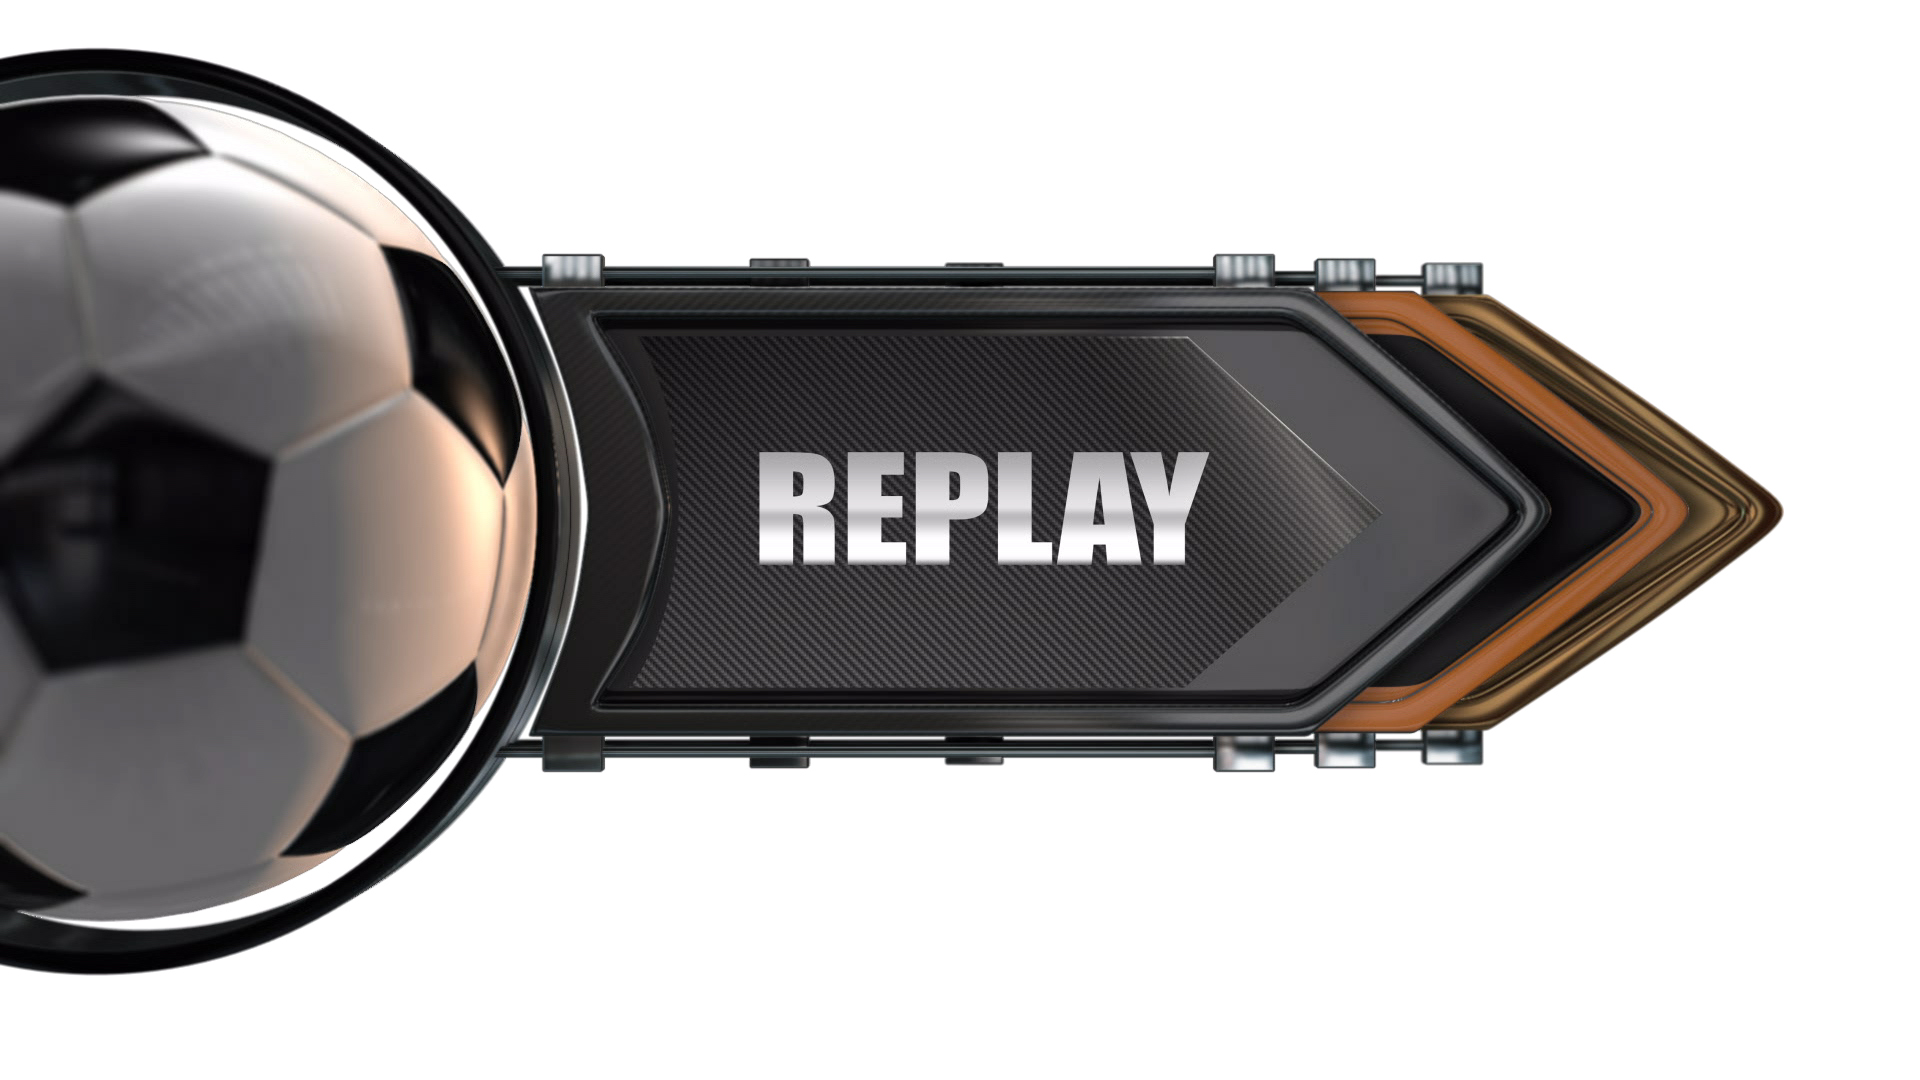 Logo Replay0